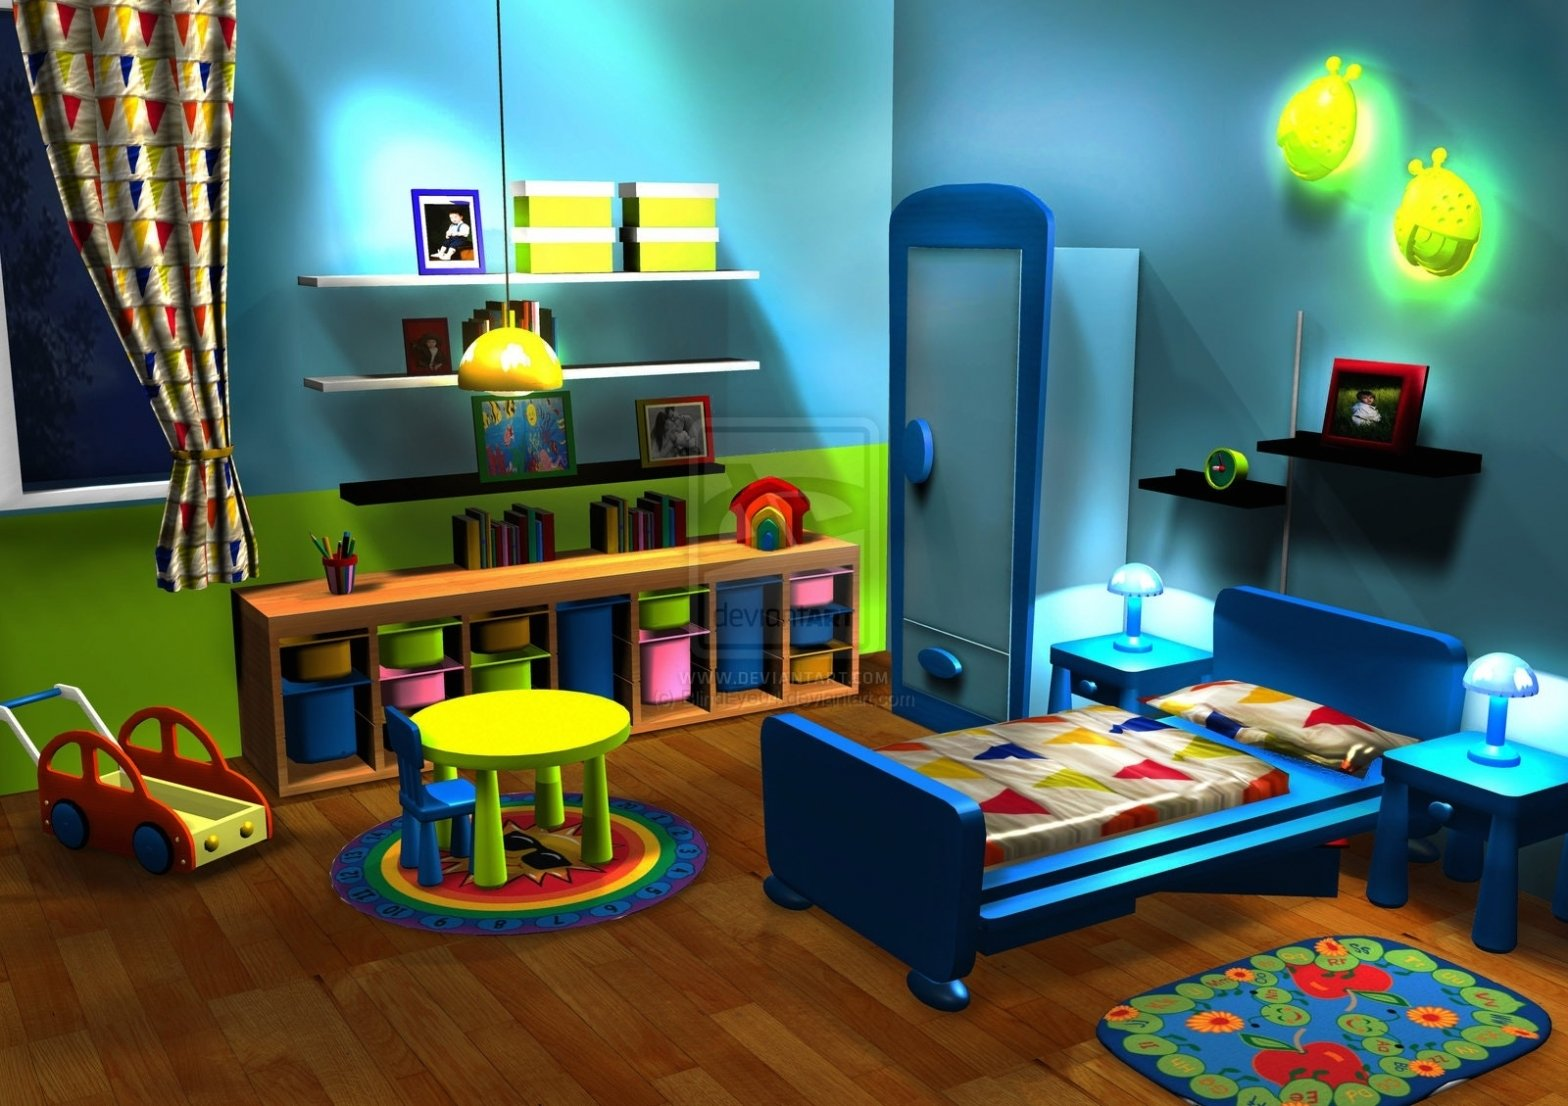 10 Nice Toddler Boy Room Decorating Ideas decorating toddler boy room decor home design diy decorate ideas 2020